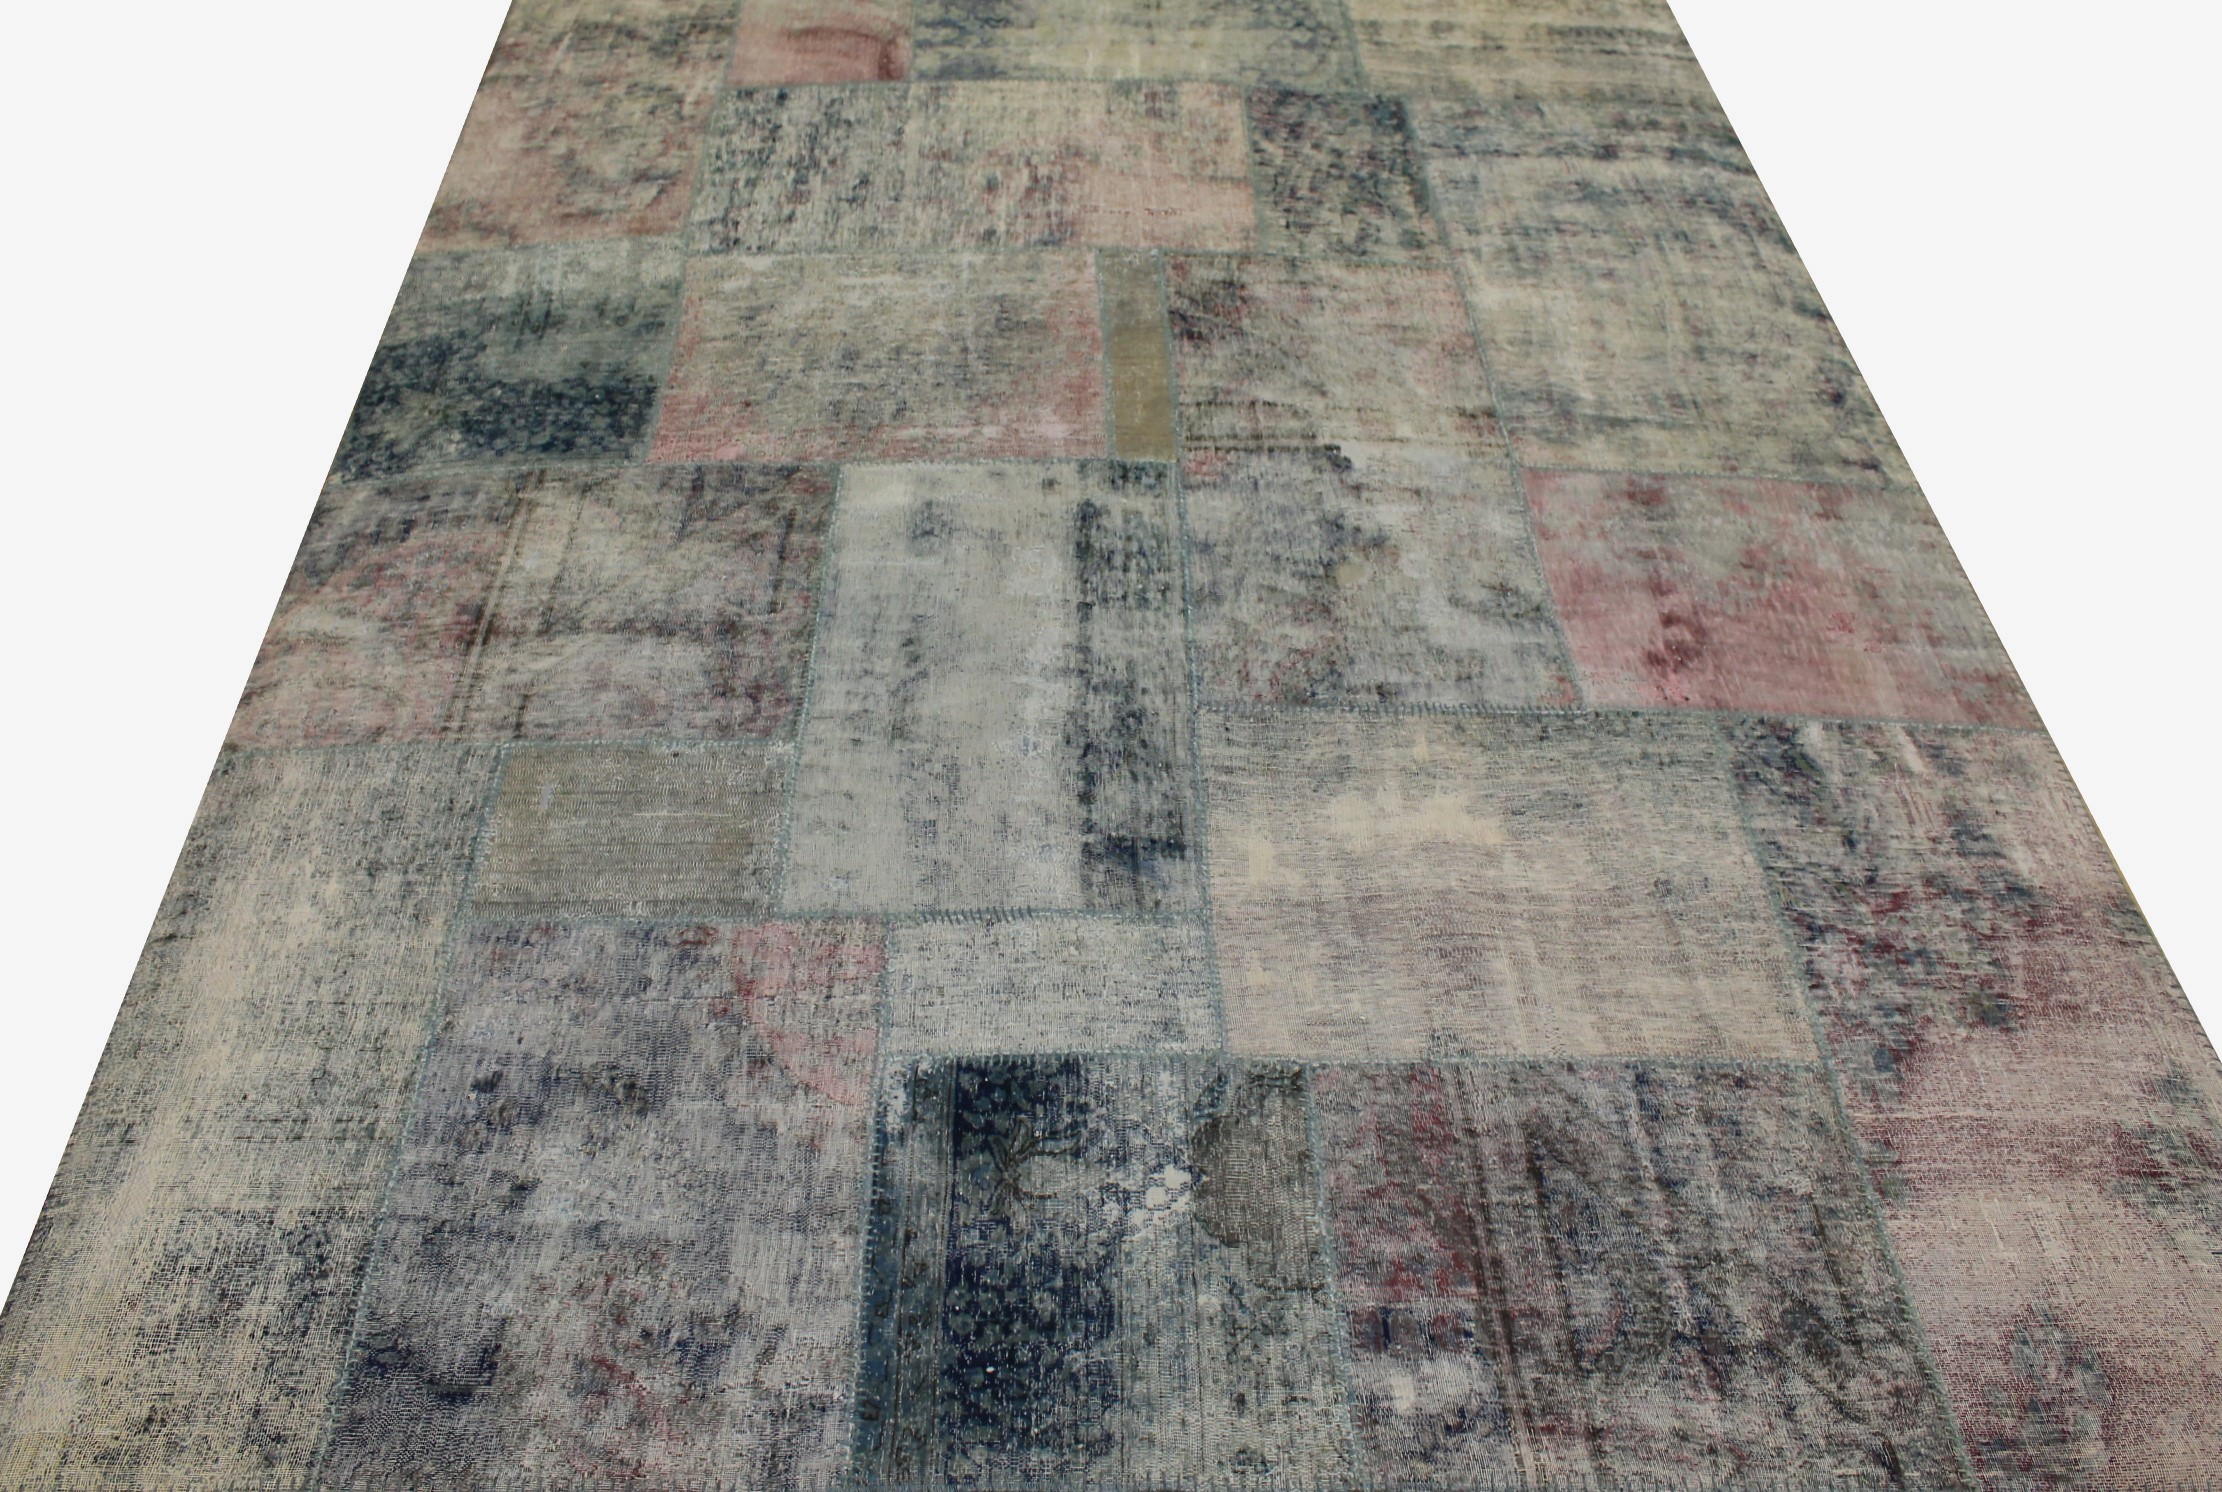 8x10 Contemporary Hand Knotted Wool Area Rug - MR13004